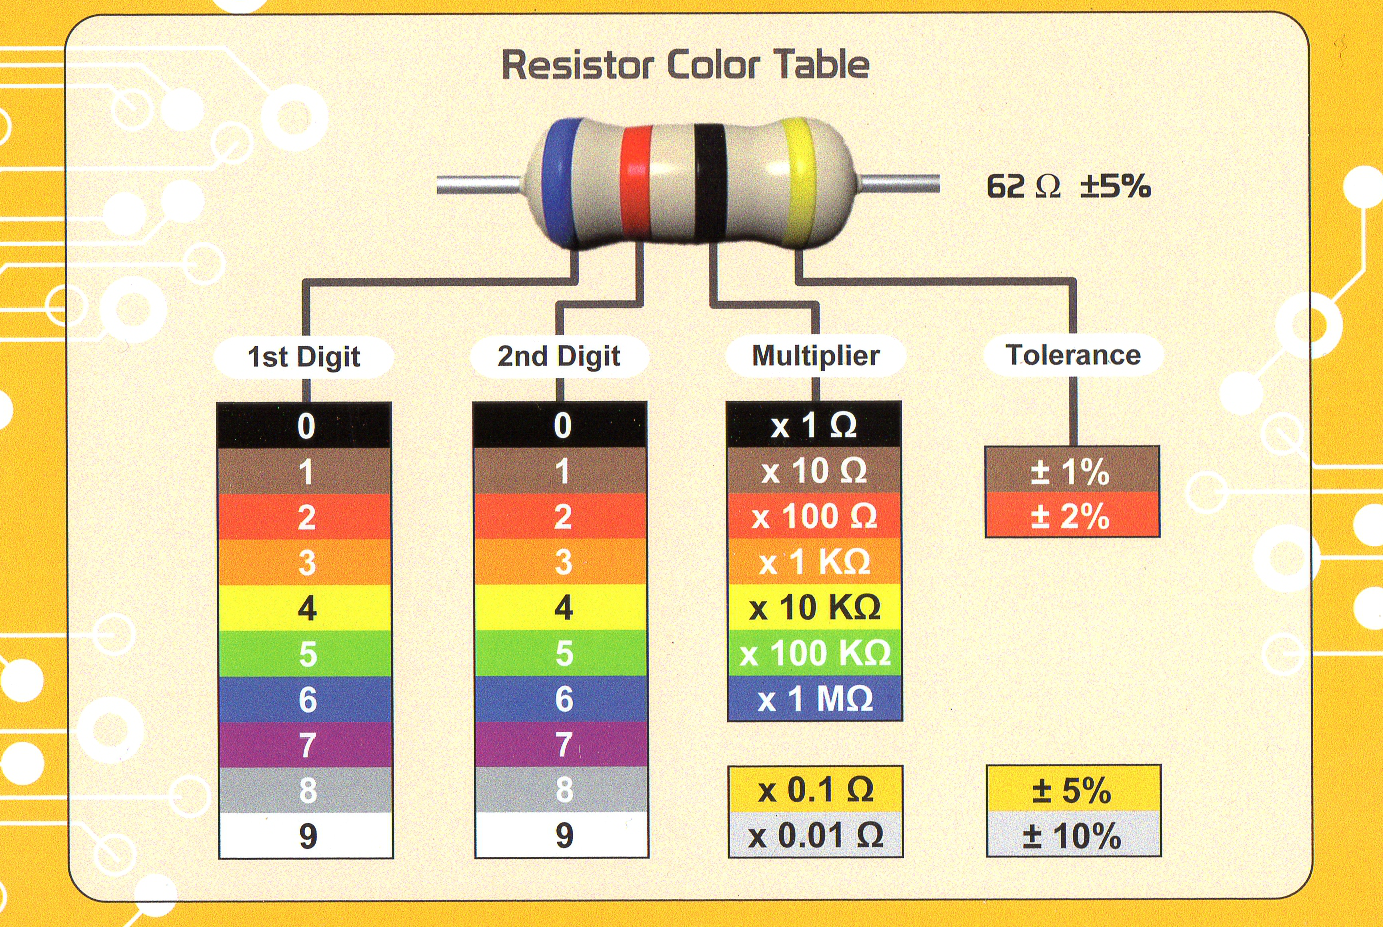 Capacitor Color Codes likewise Index moreover 818587 Fuse Panel Diagram additionally sysrecon furthermore Resistor Color Code Guide. on standard capacitor sizes